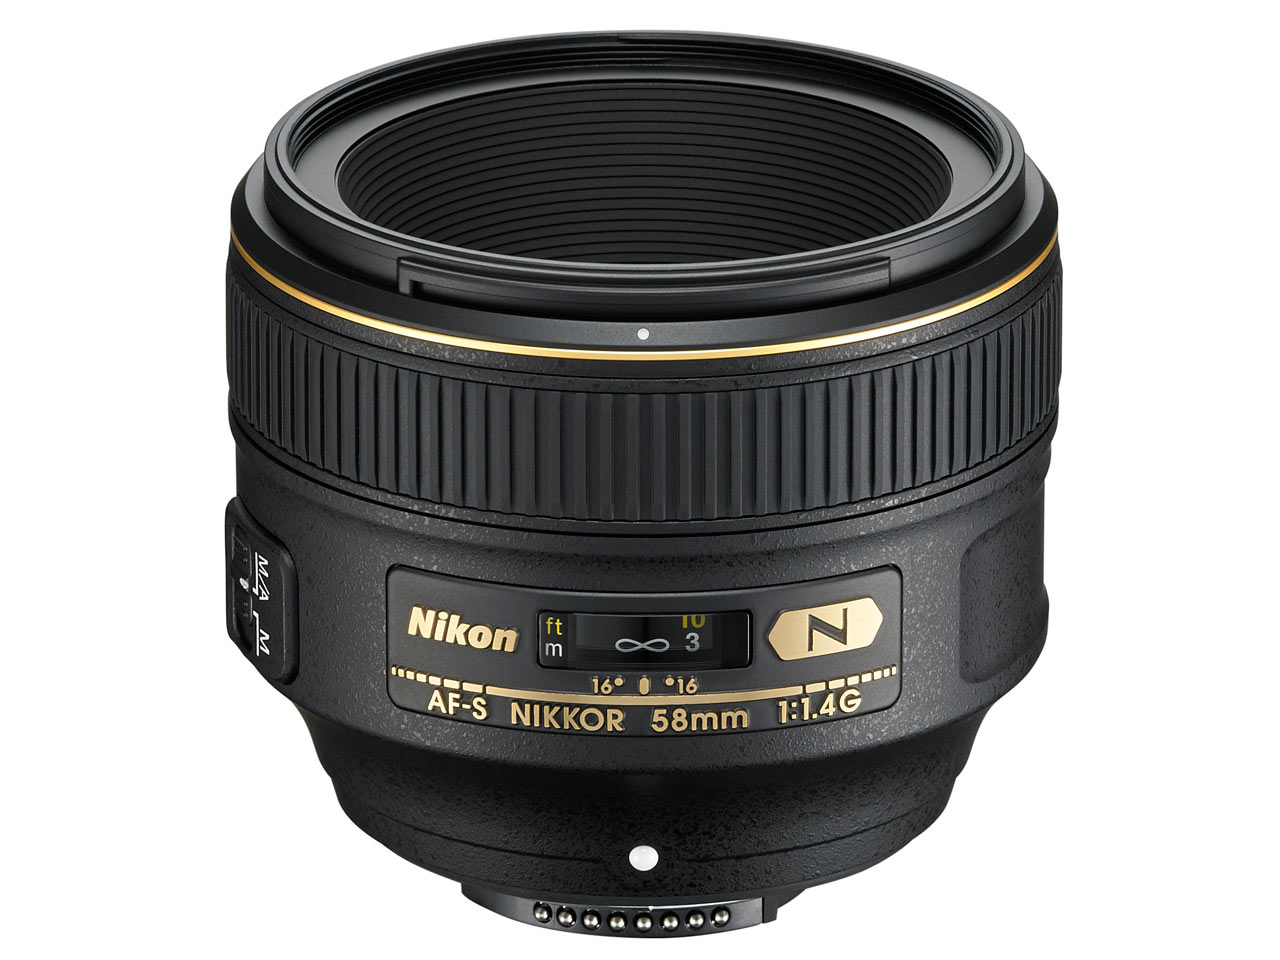 Lens Fast Sharp And Powerful Lens For Extreme Low Light Scenarios